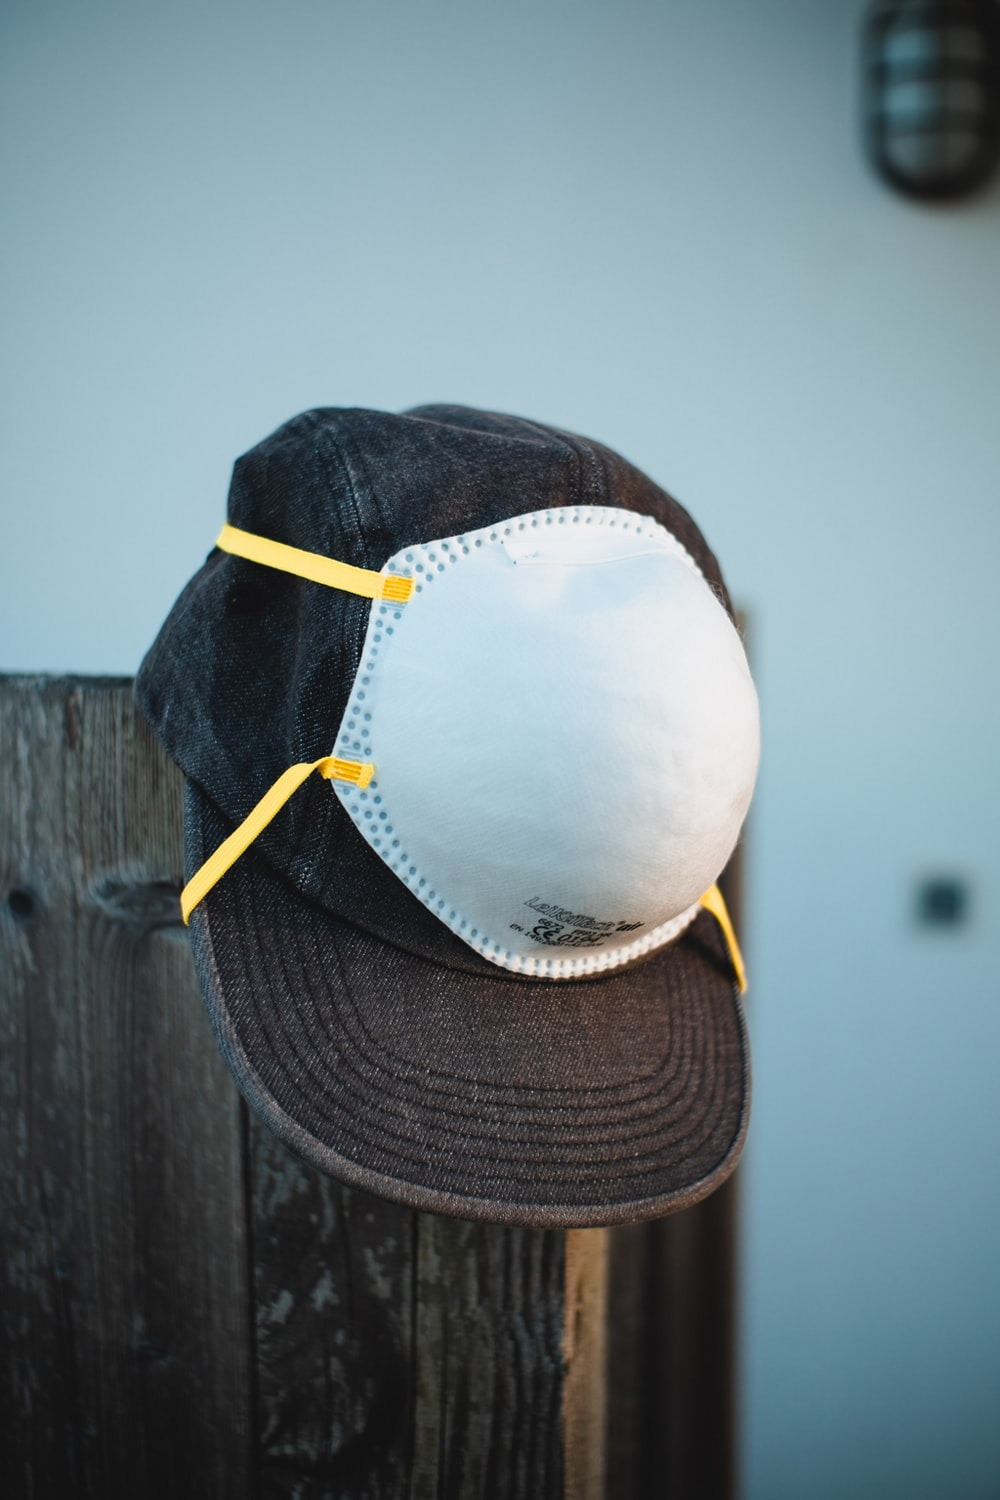 person wearing white and black baseball cap